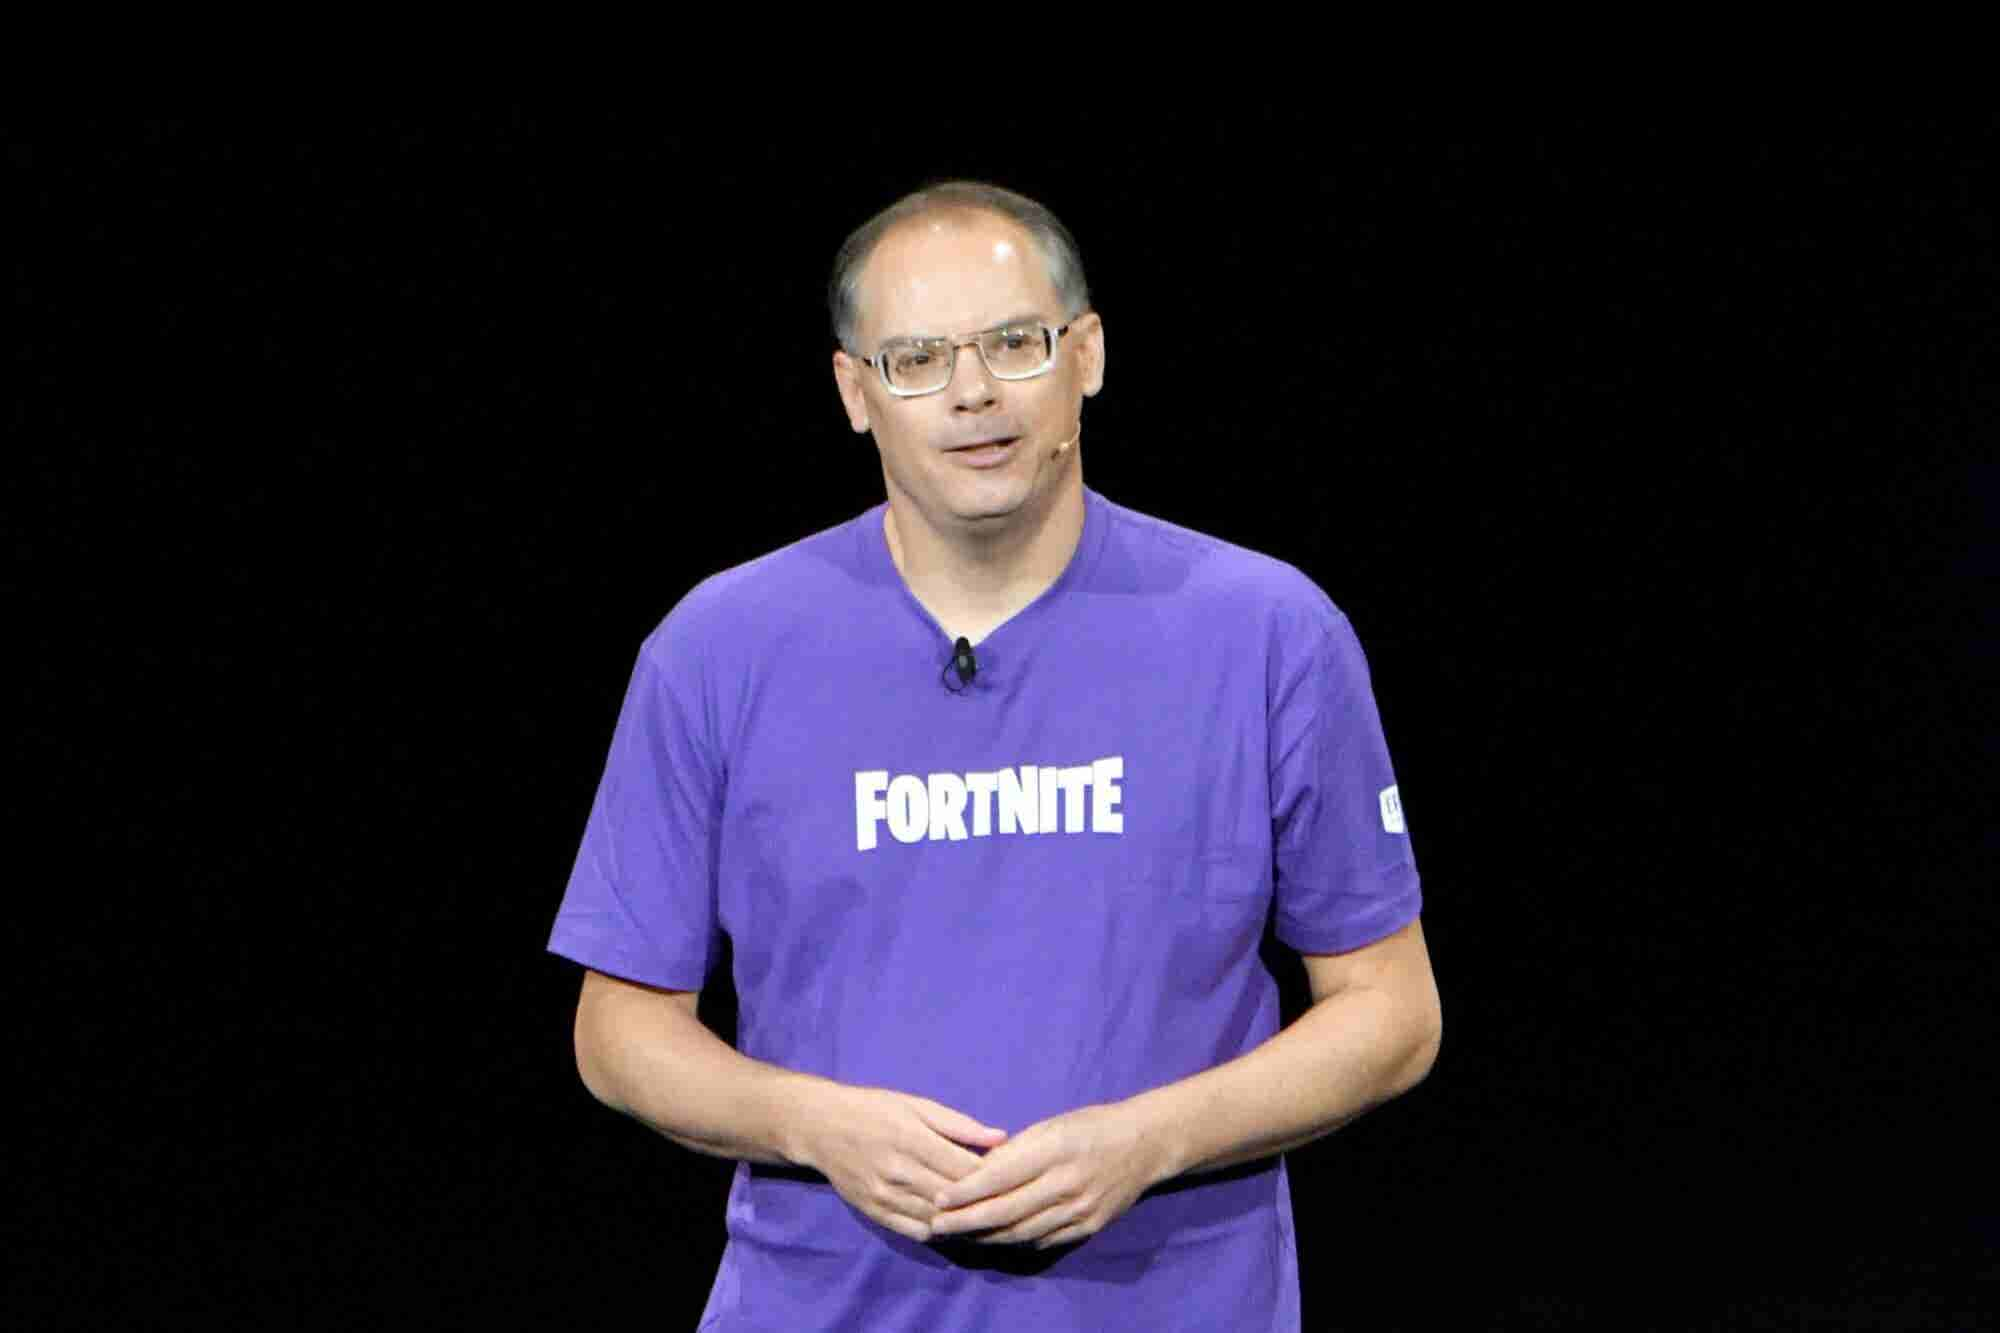 The CEO Behind 'Fortnite' Is Now Worth More Than $7 Billion